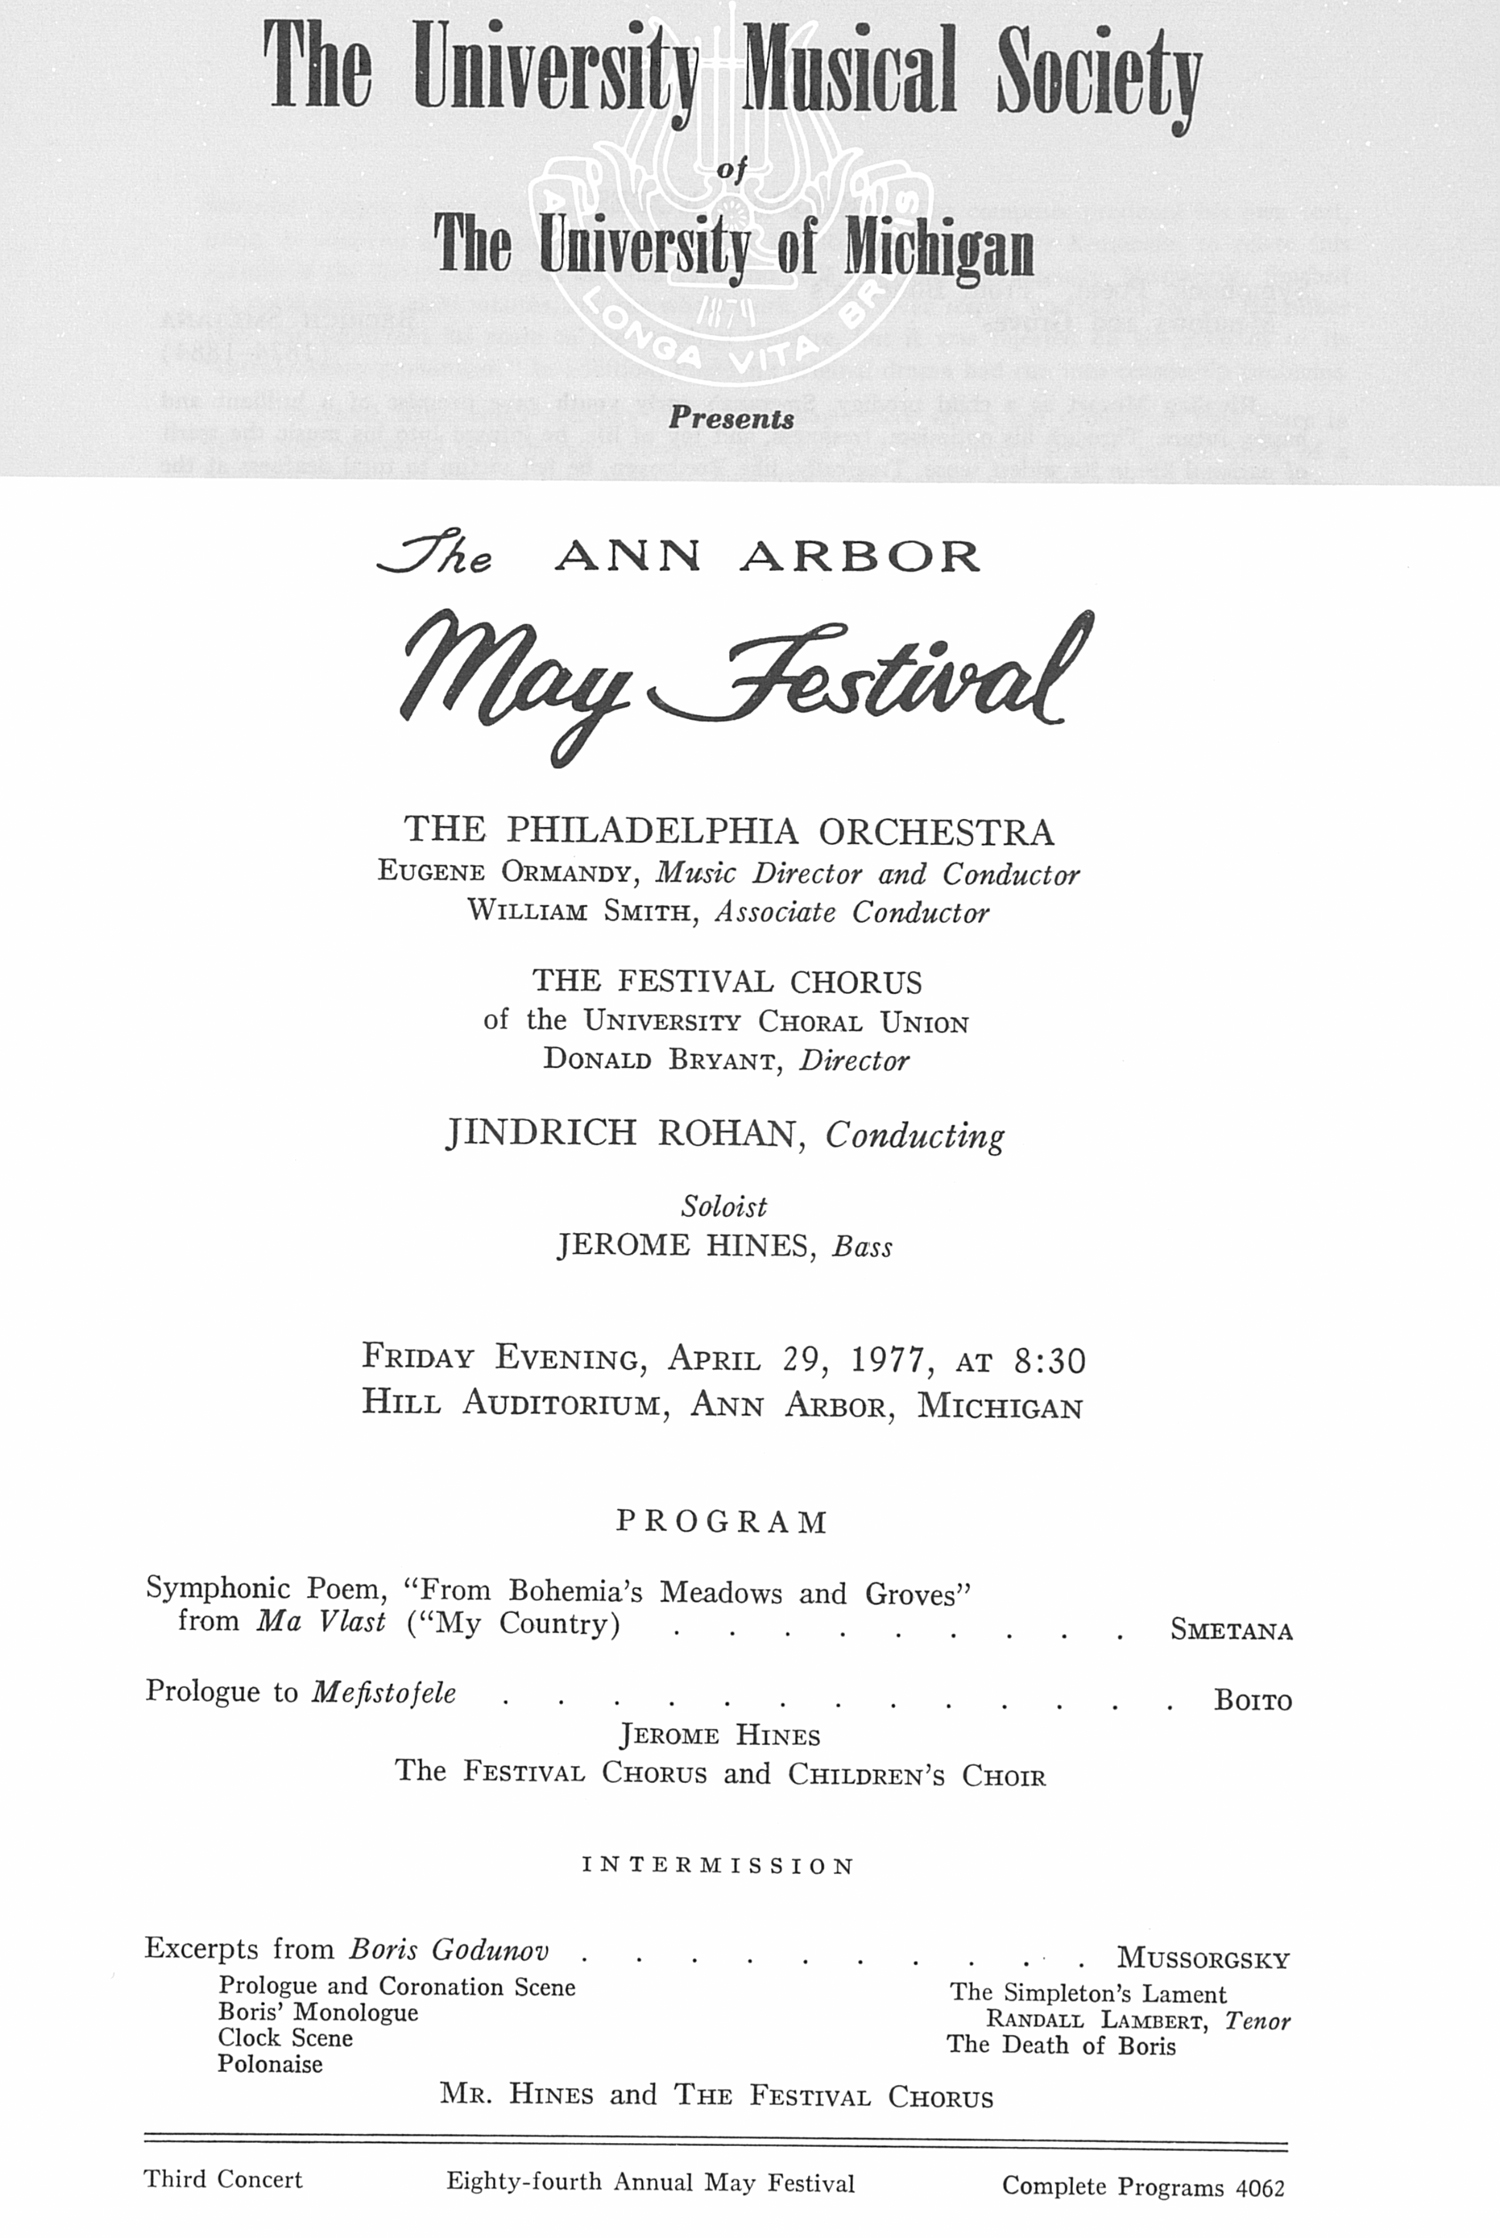 UMS Concert Program, April 29, 1977: The Ann Arbor May Festival -- The Philadelphia Orchestra image